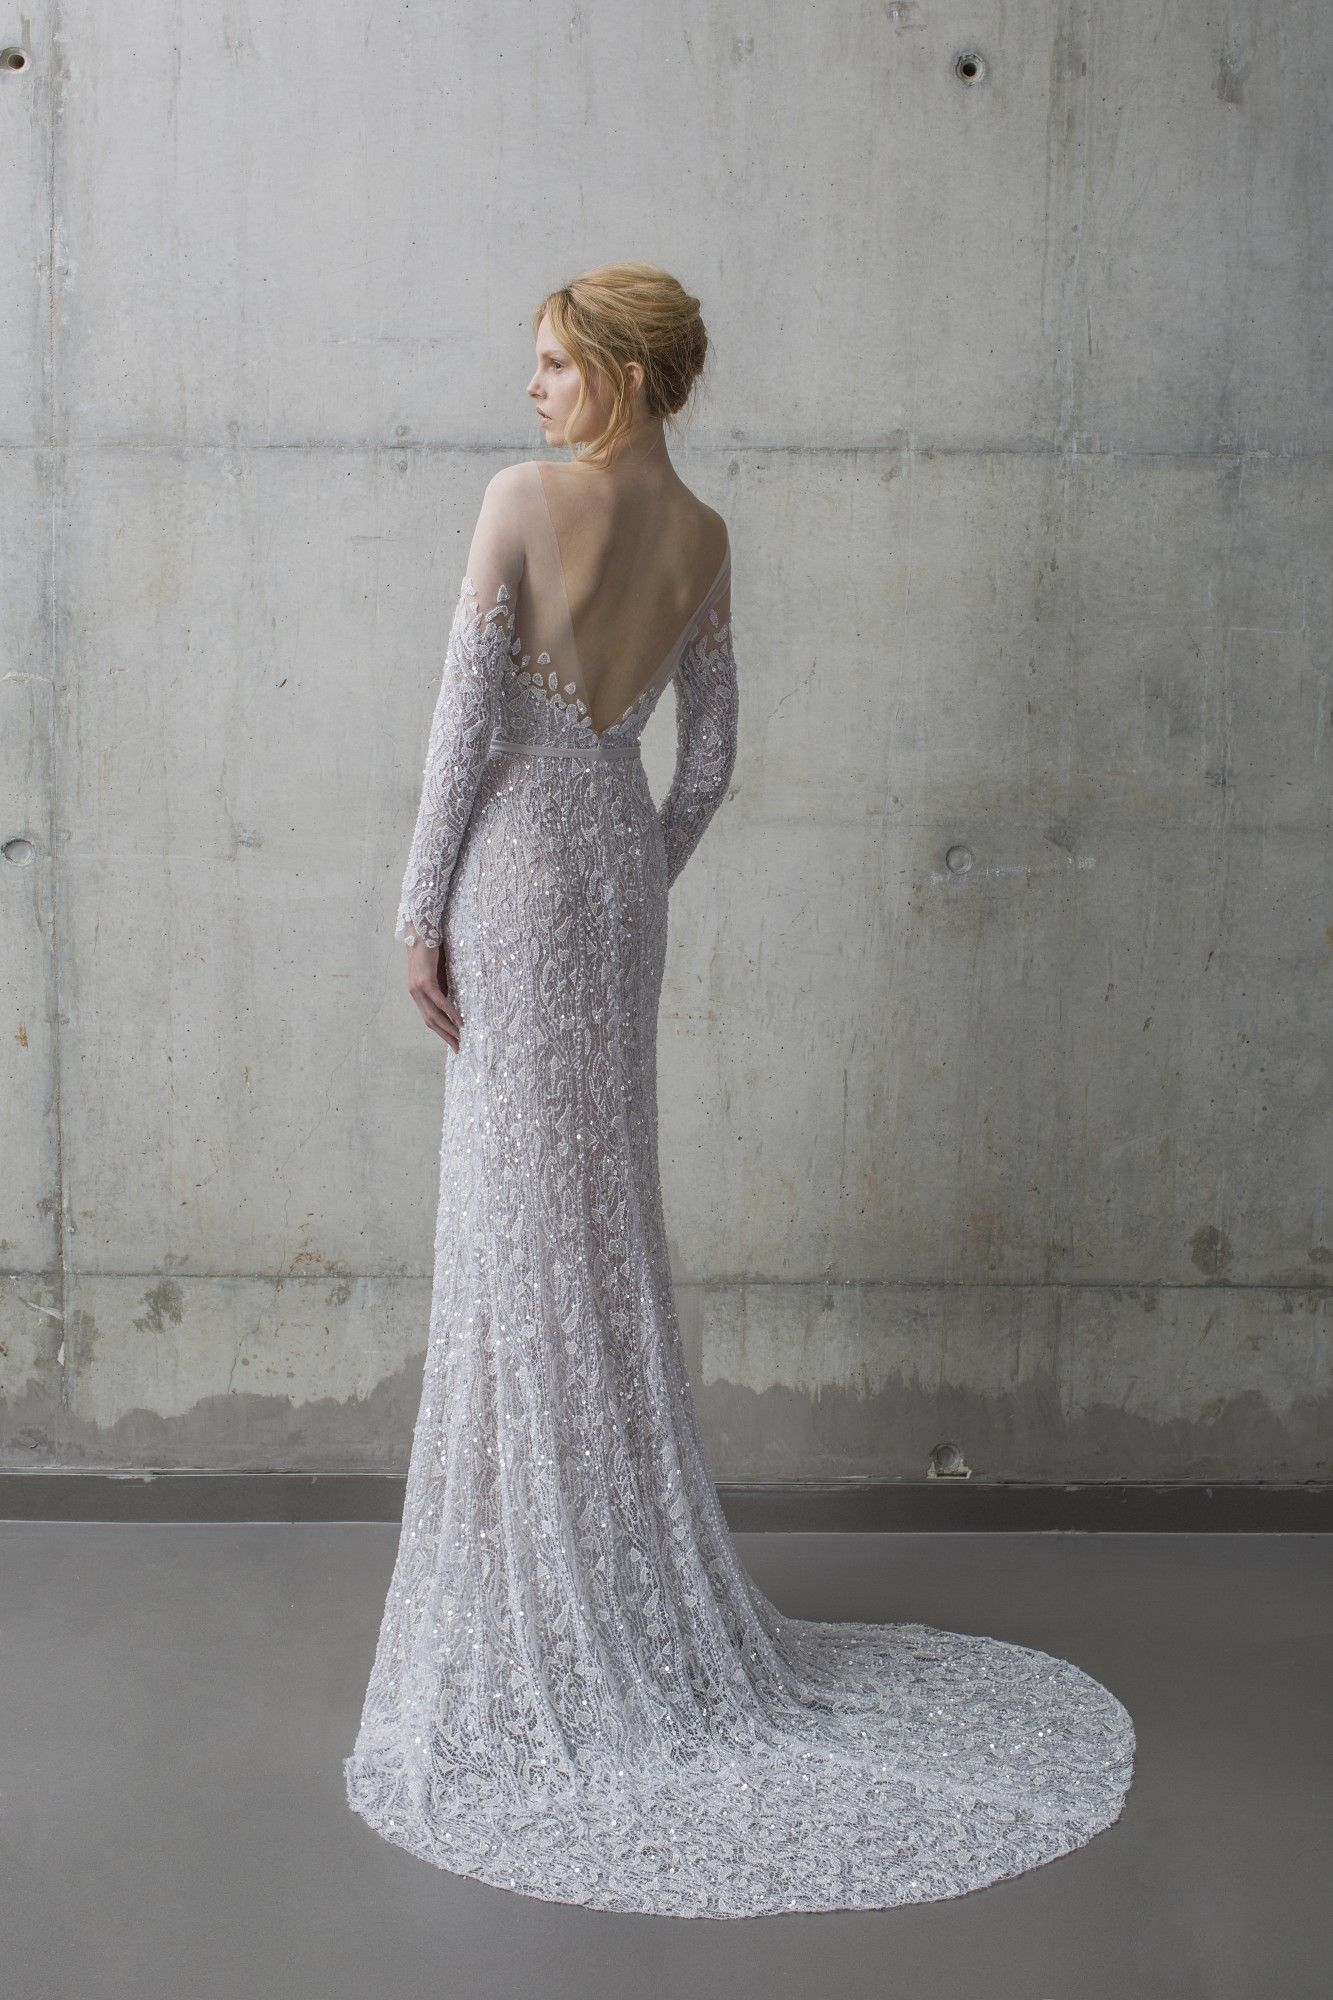 Edgy wedding dresses  Pin by Alexis Herberg on Personal Life  Pinterest  Wedding